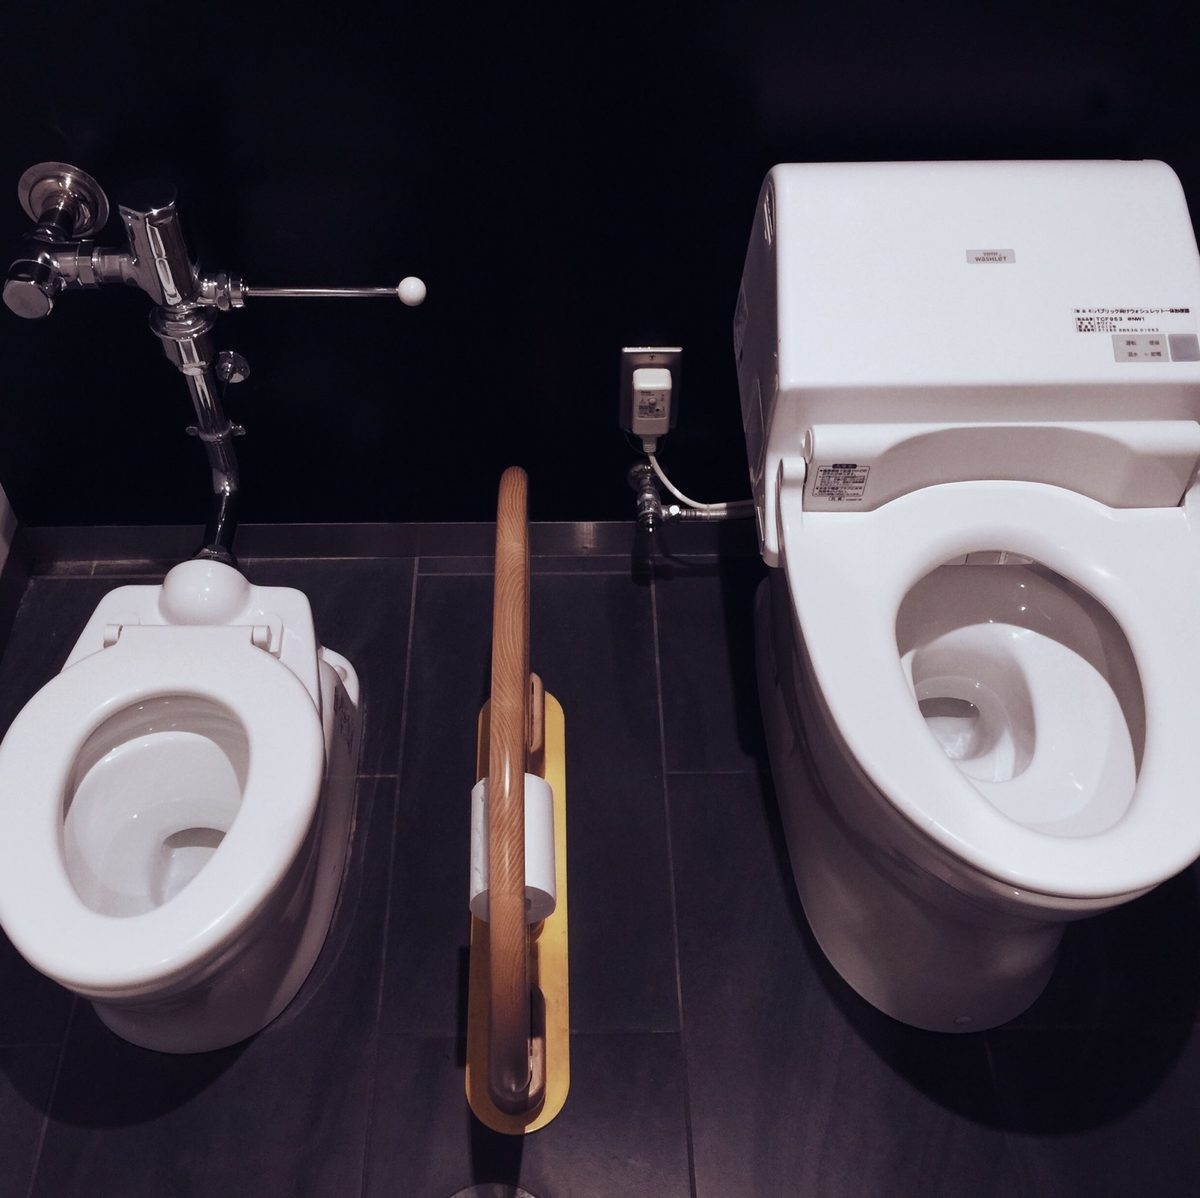 amazing japanese toilets with built in bidets and seat cleaners, most amazing toilets in the world